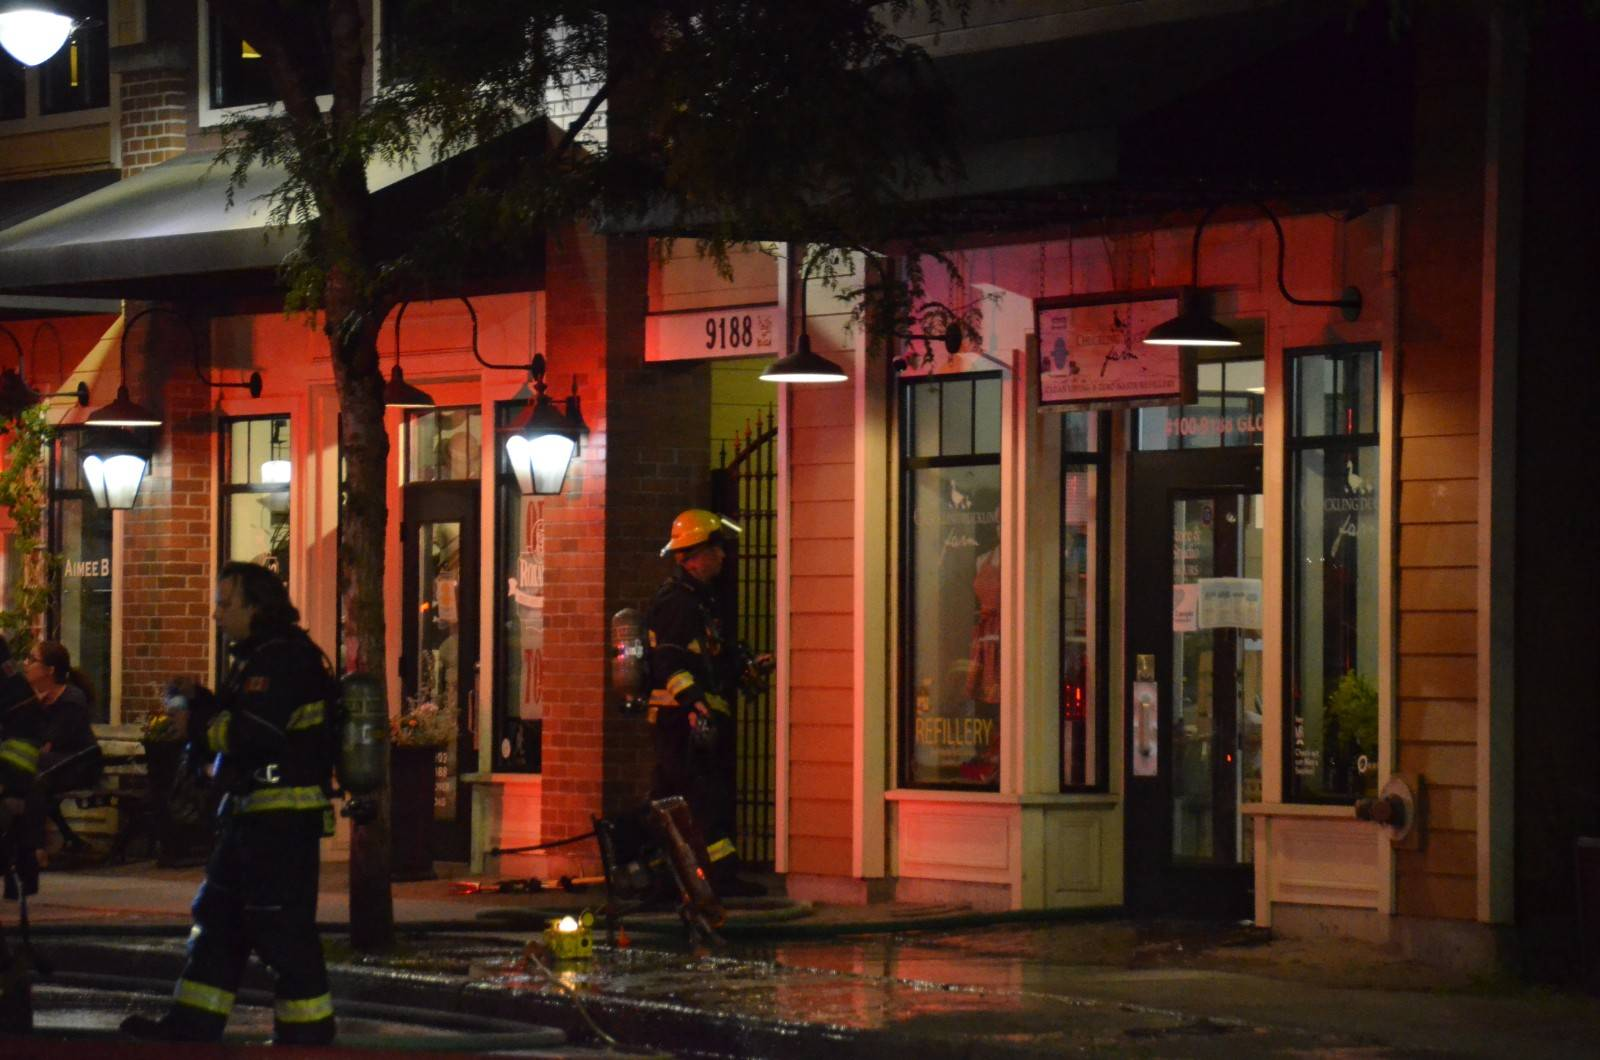 Township firefighters responded to Chuckling Duckling Farm in the 9100 block of Glover Road later Tuesday, June 16, 2020 after a fire broke out inside the local Fort Langley business. (Curtis Kreklau/Special to Langley Advance Times)